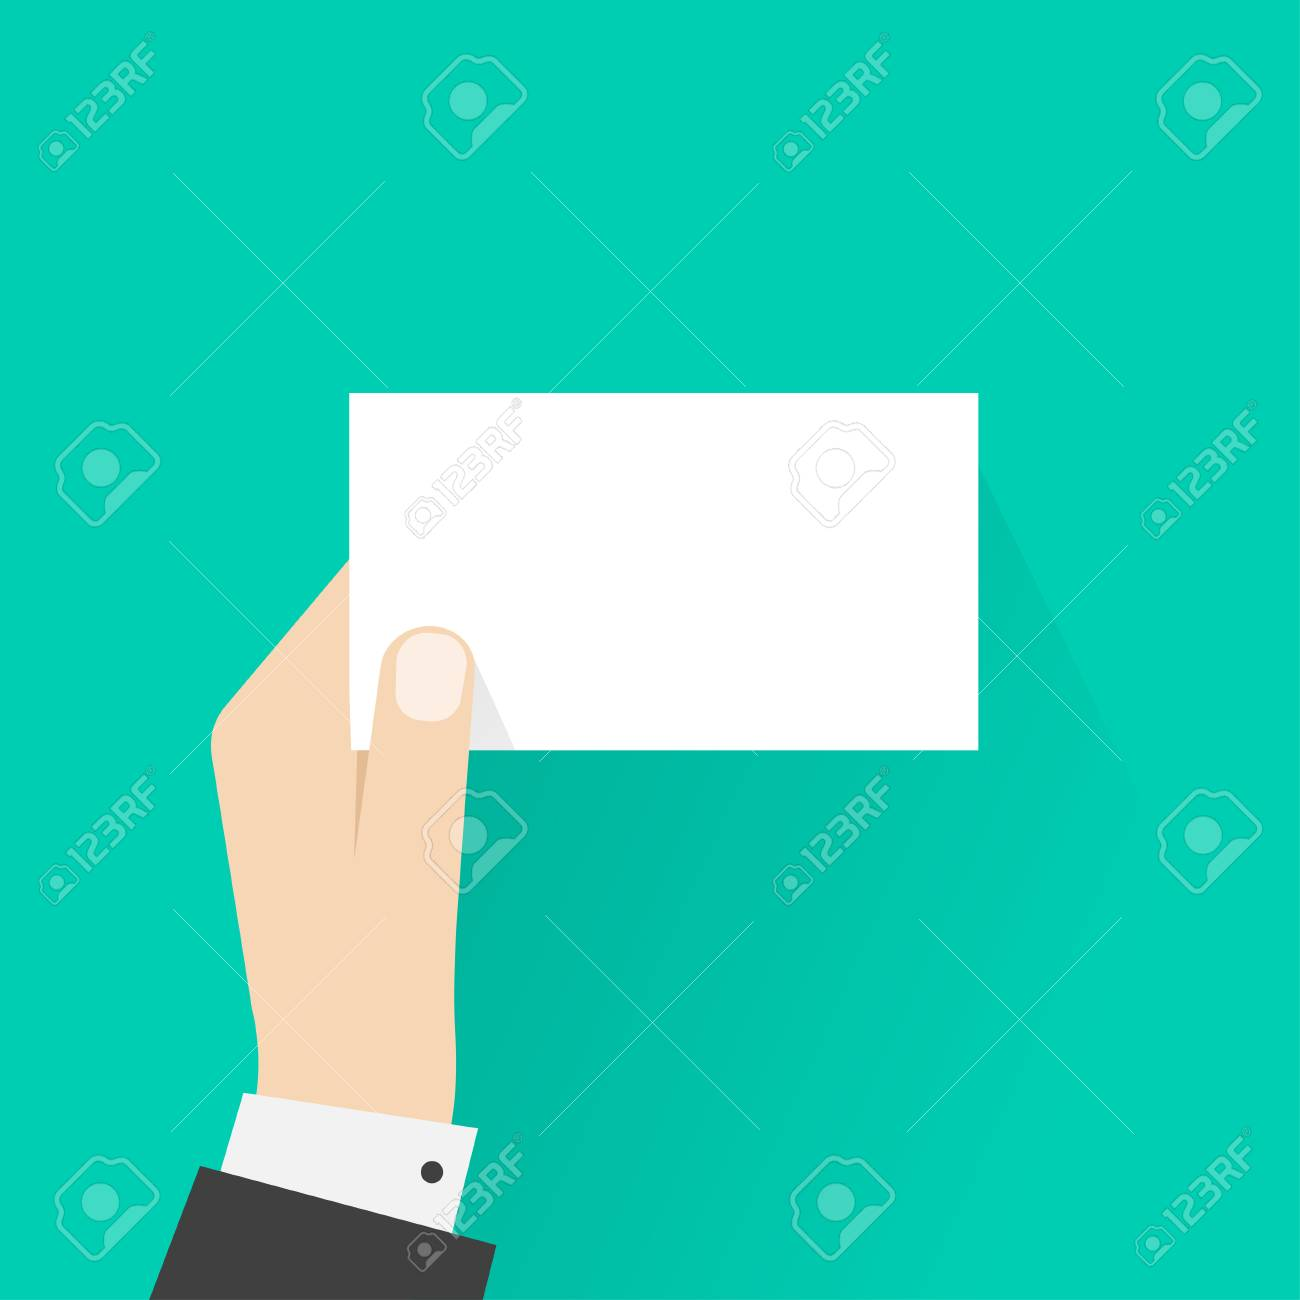 Business Man Hand Holding Card Mockup Template Vector Illustration Showing Blank Calling Empty